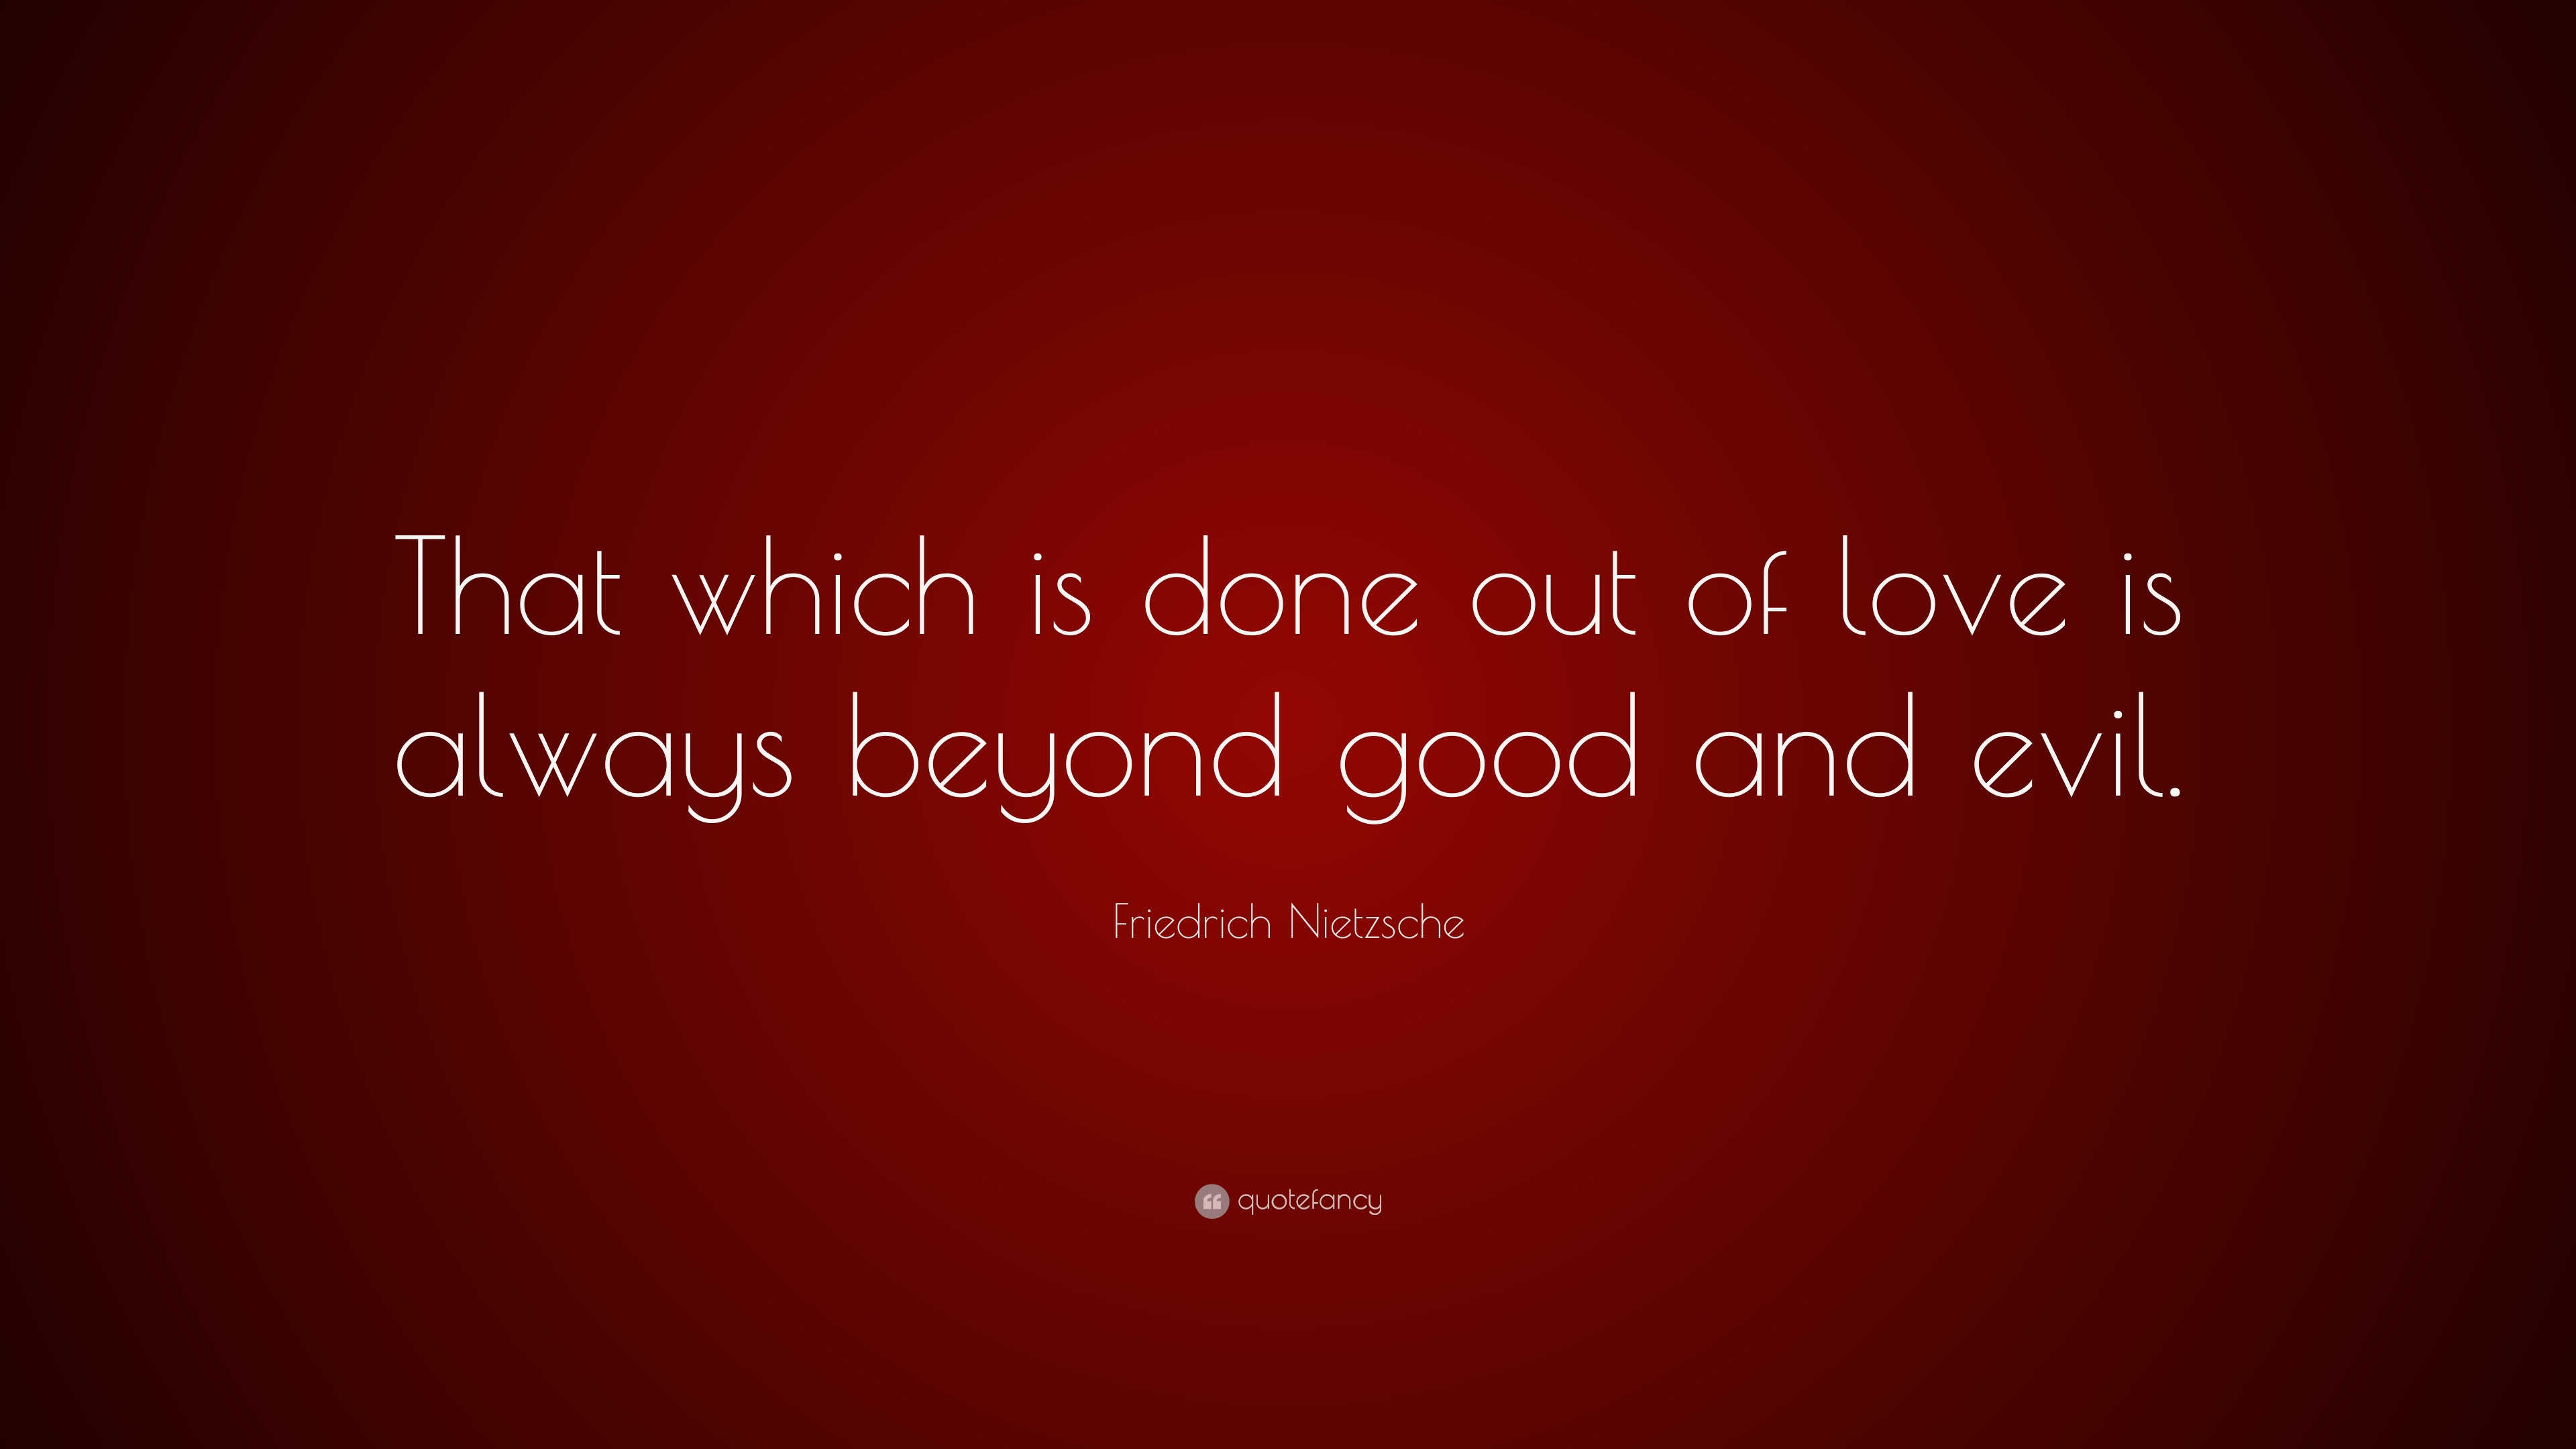 Friedrich Nietzsche Quote That Which Is Done Out Of Love Is Always